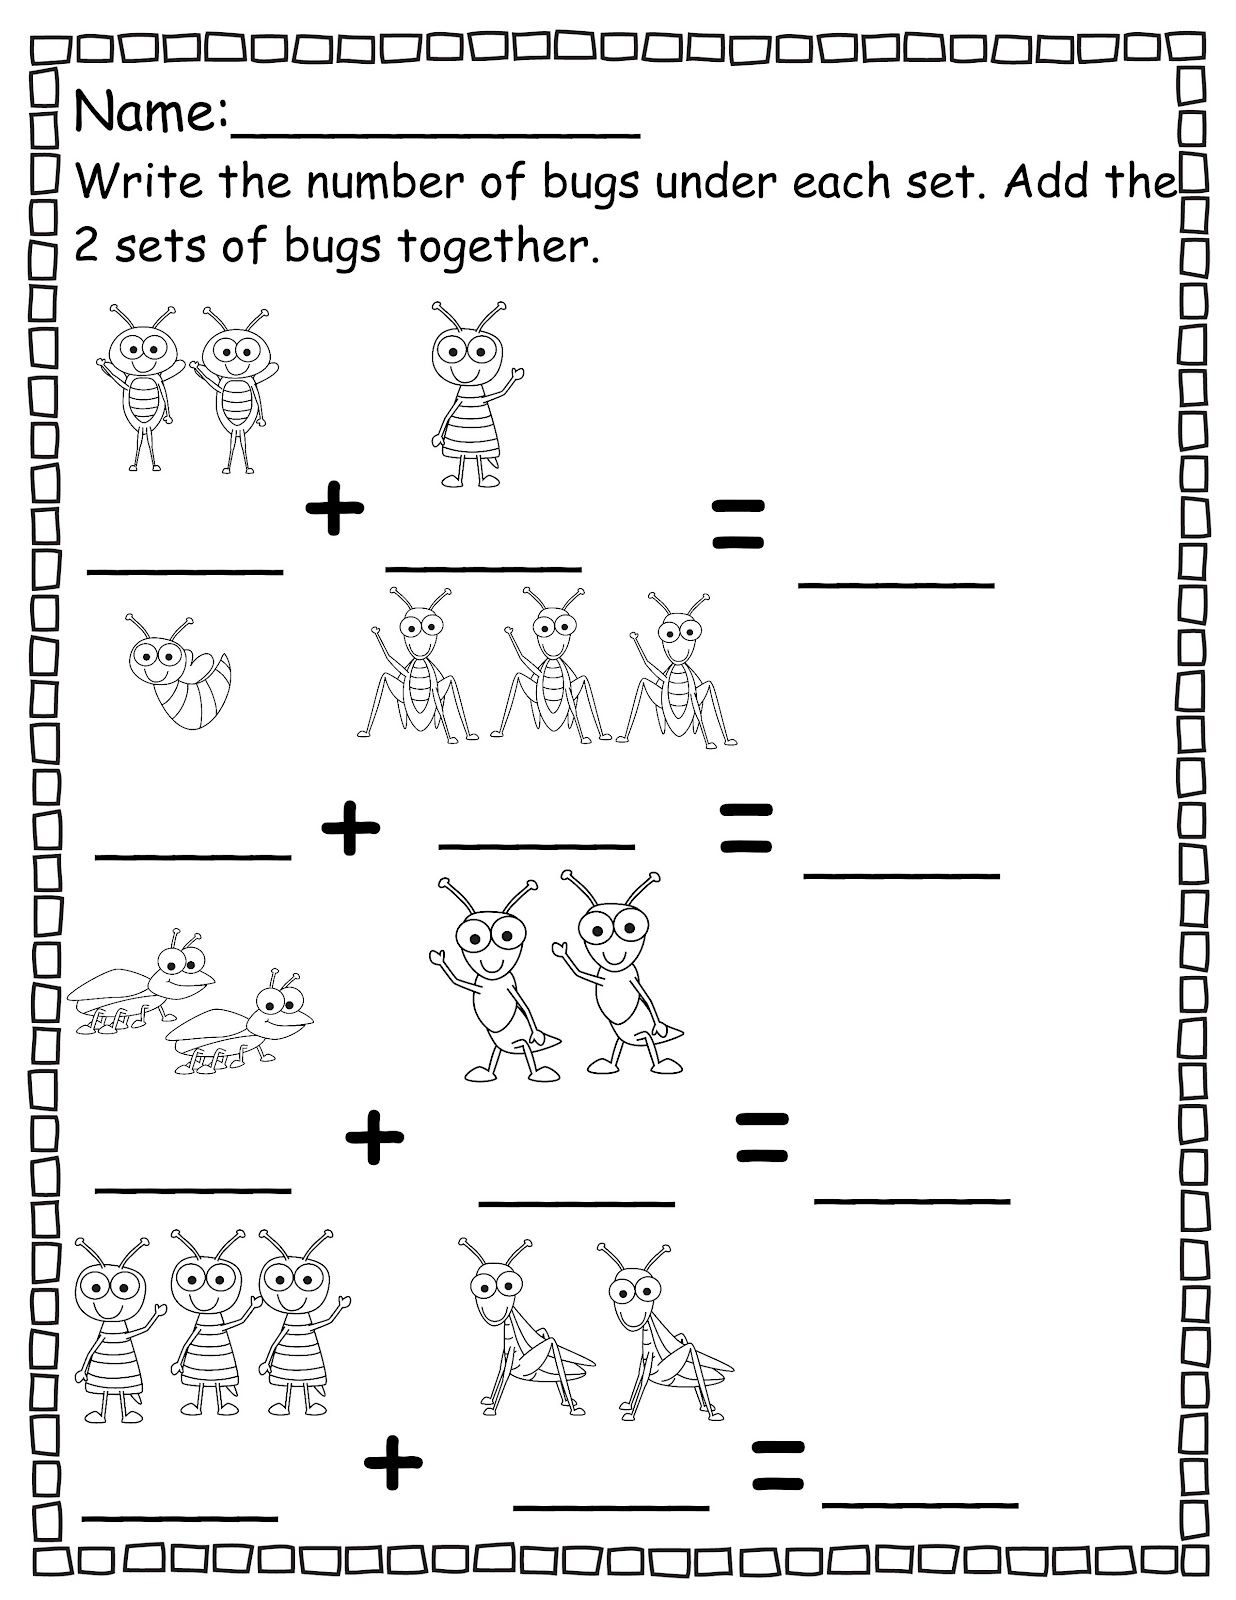 Printables Prek Math Worksheets safarmediapps Worksheets Printables – Math Pre K Worksheets